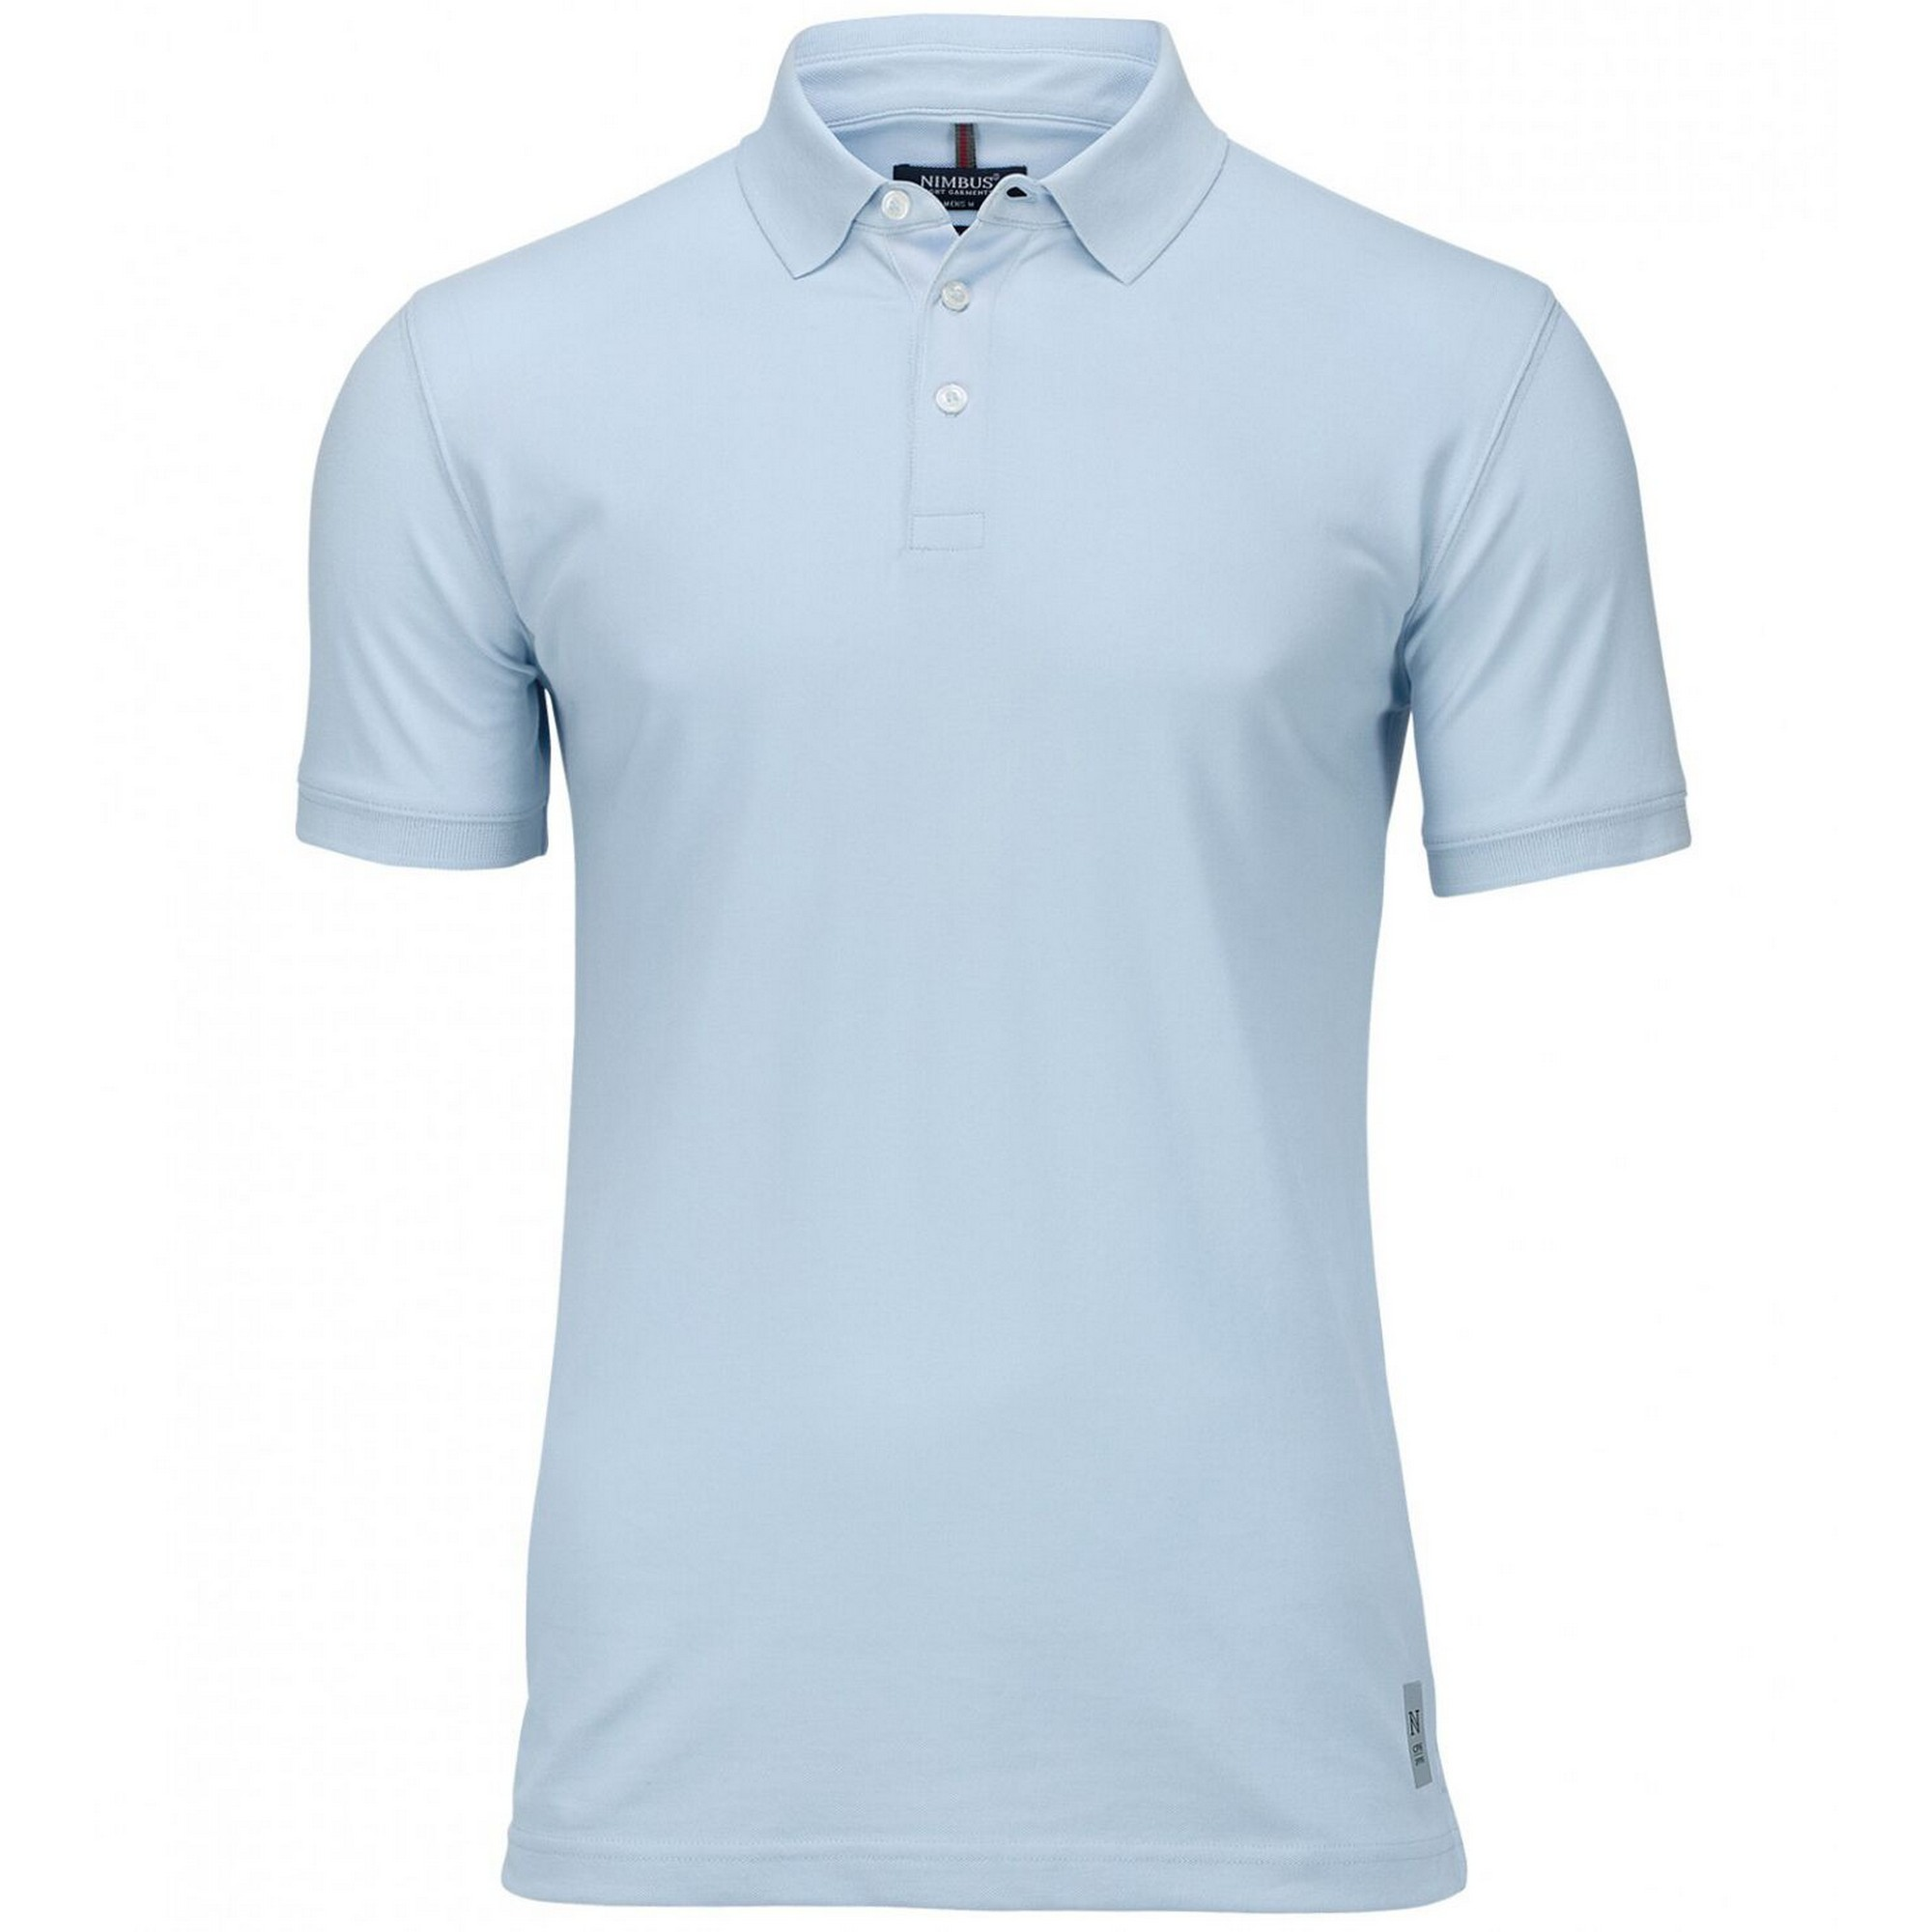 Nimbus Mens Harvard Stretch Deluxe Polo Shirt (2XL) (Sky Blue)